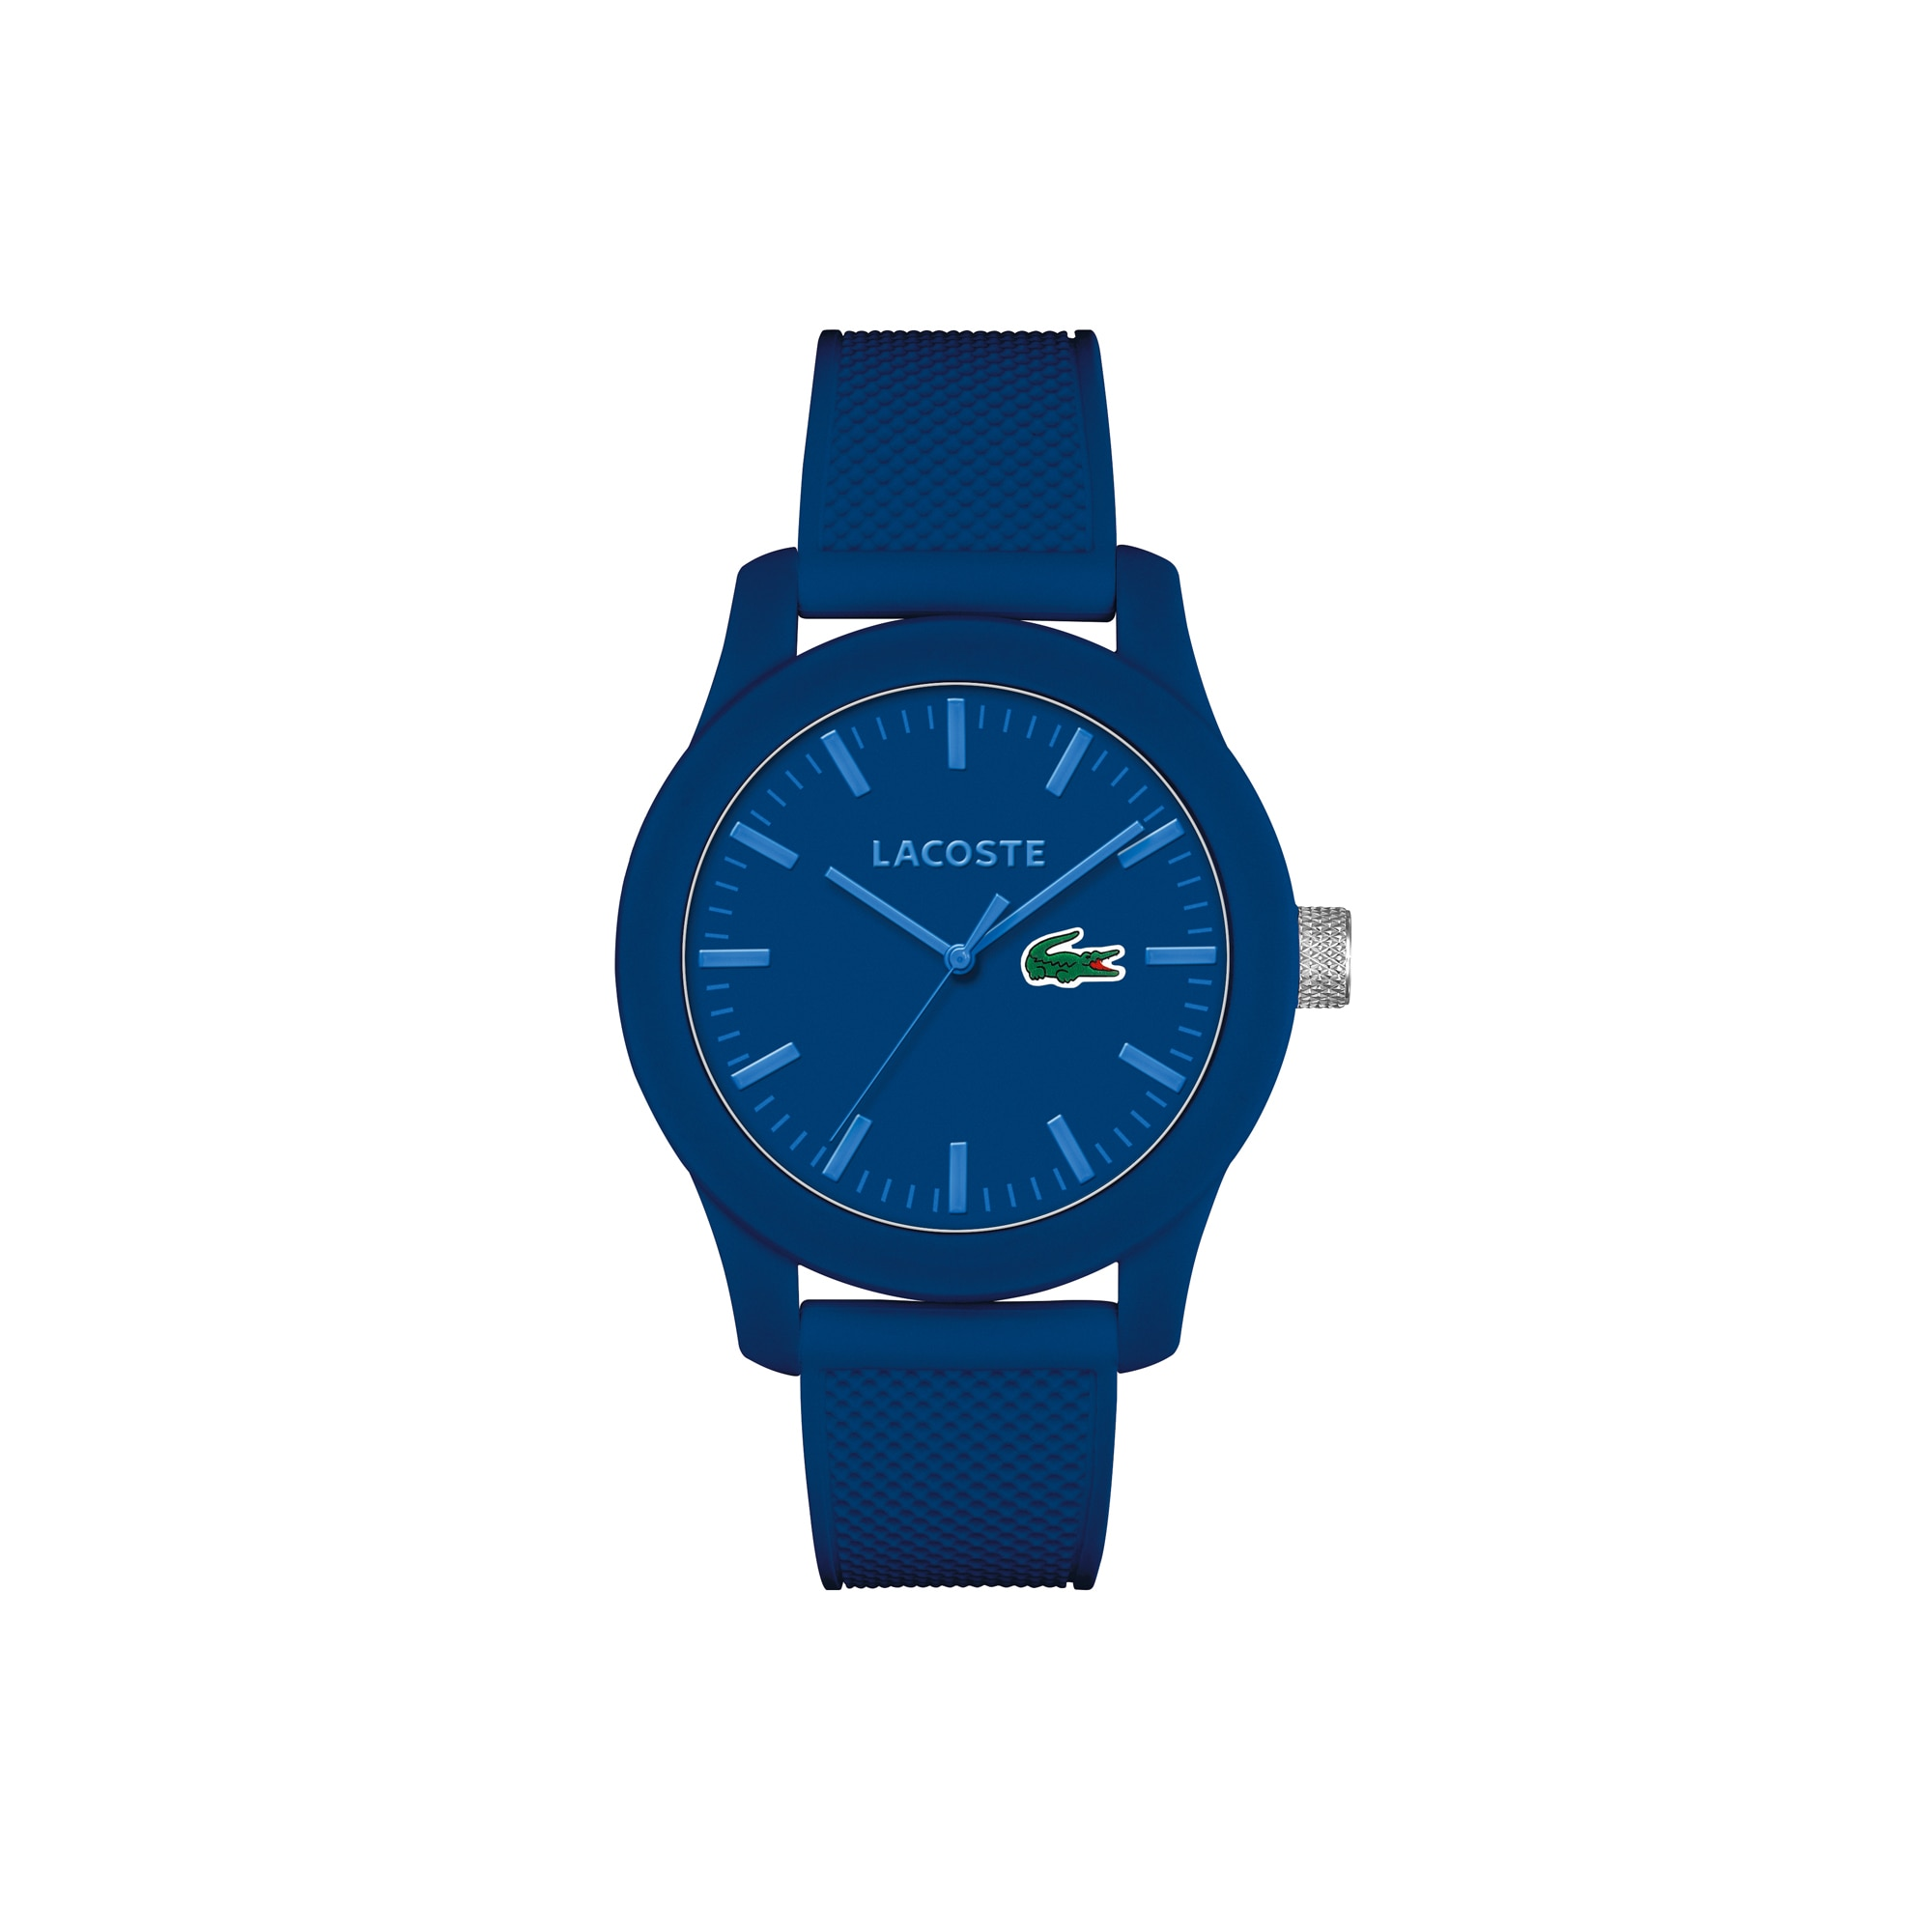 Men's Lacoste 12.12 Watch with Blue Silicone Strap